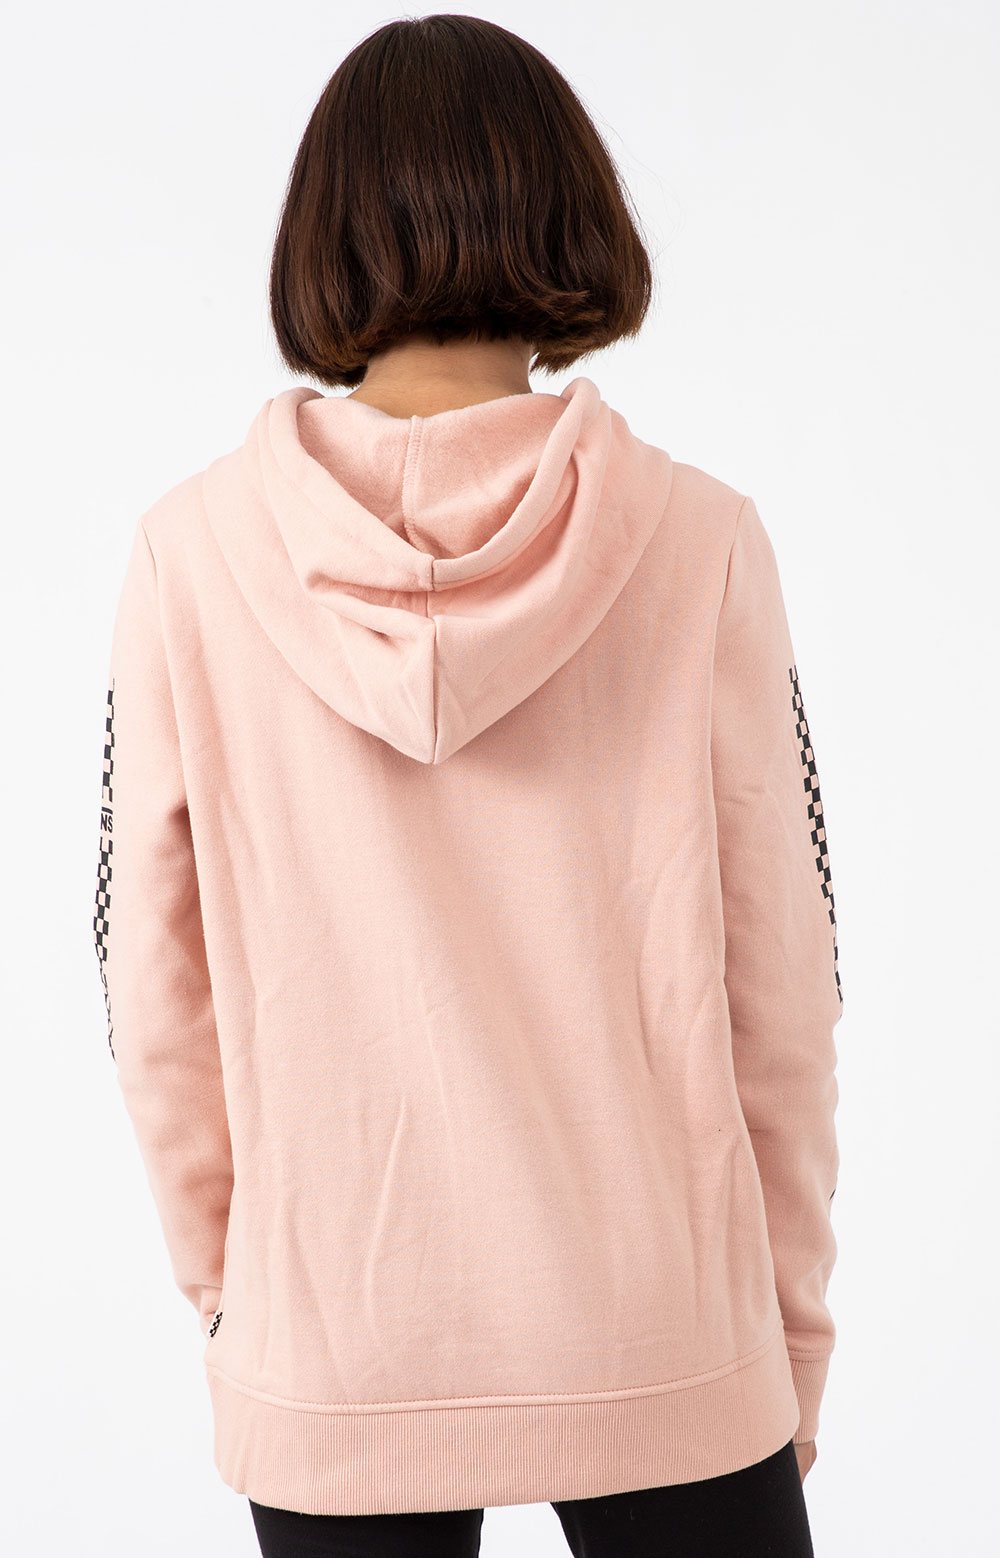 Funday Pullover Hoodie - Rose Cloud  3